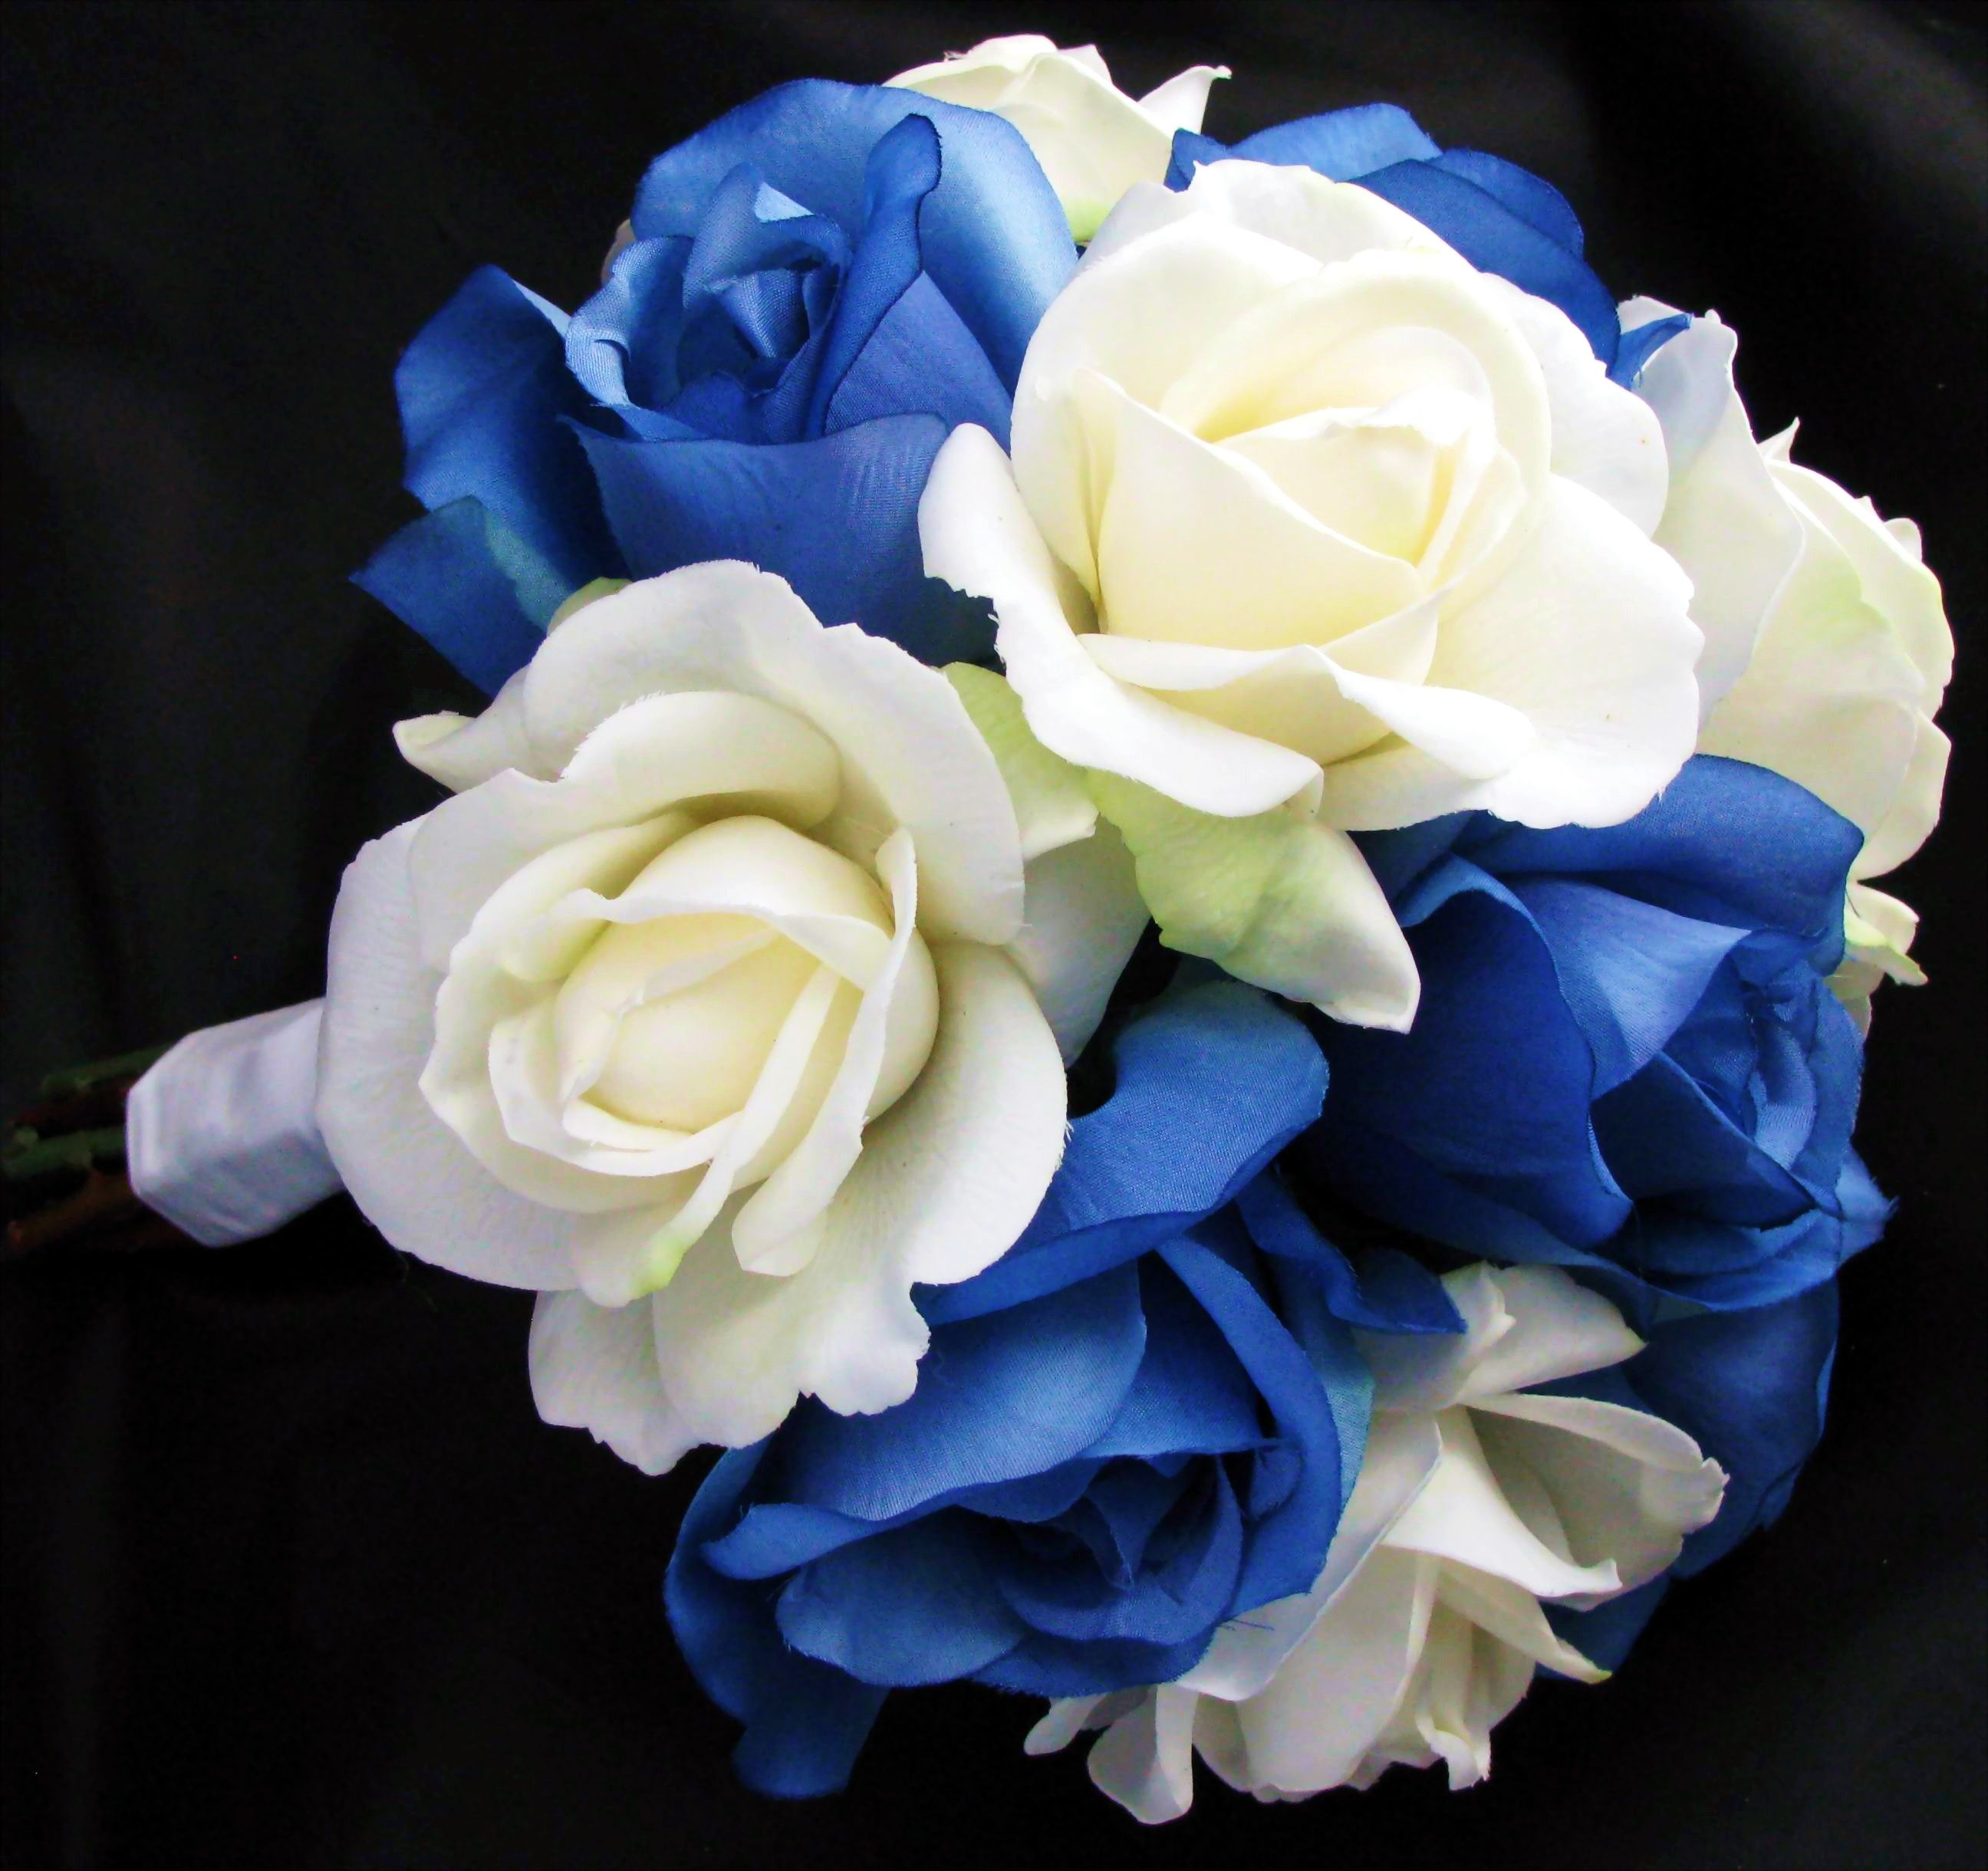 Natural touch silk bouquet blue cream white rose leora for White and blue flower bouquet